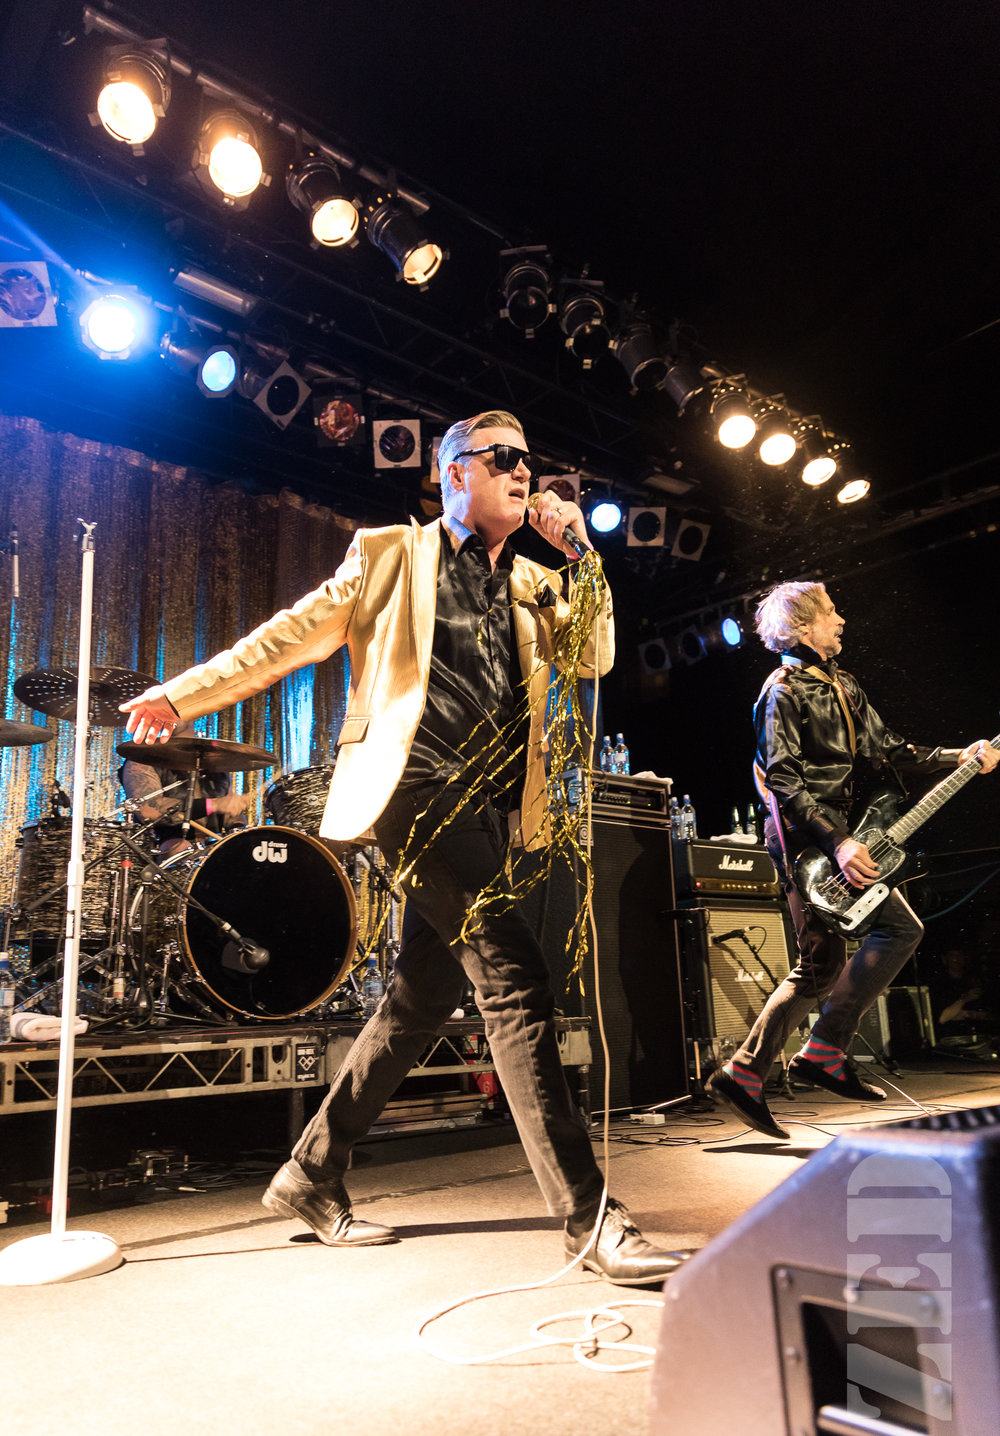 Me First and the Gimme Gimmes Power Station 15 Oct 17 L-21.jpg